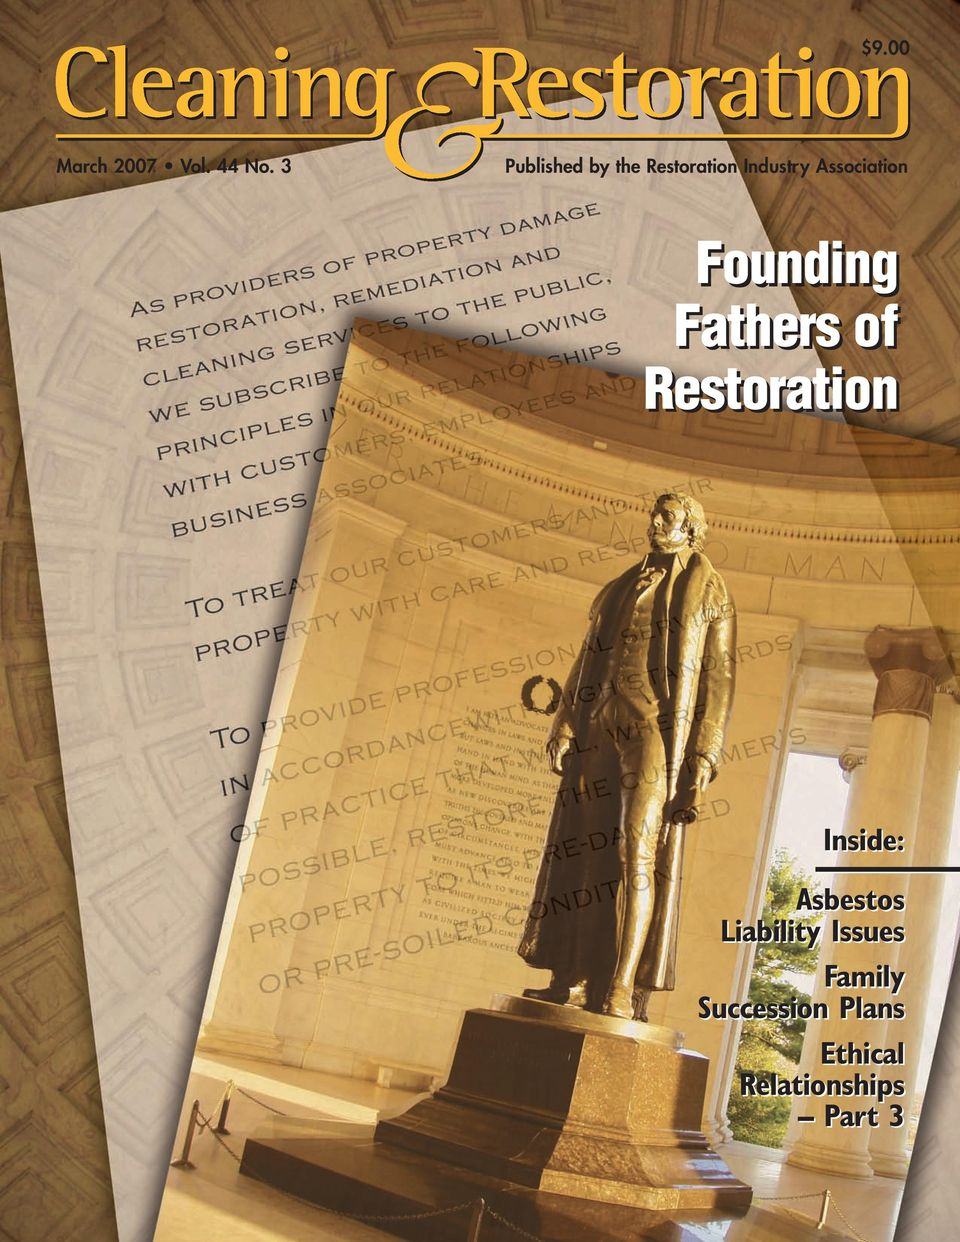 Association Founding Fathers of Restoration